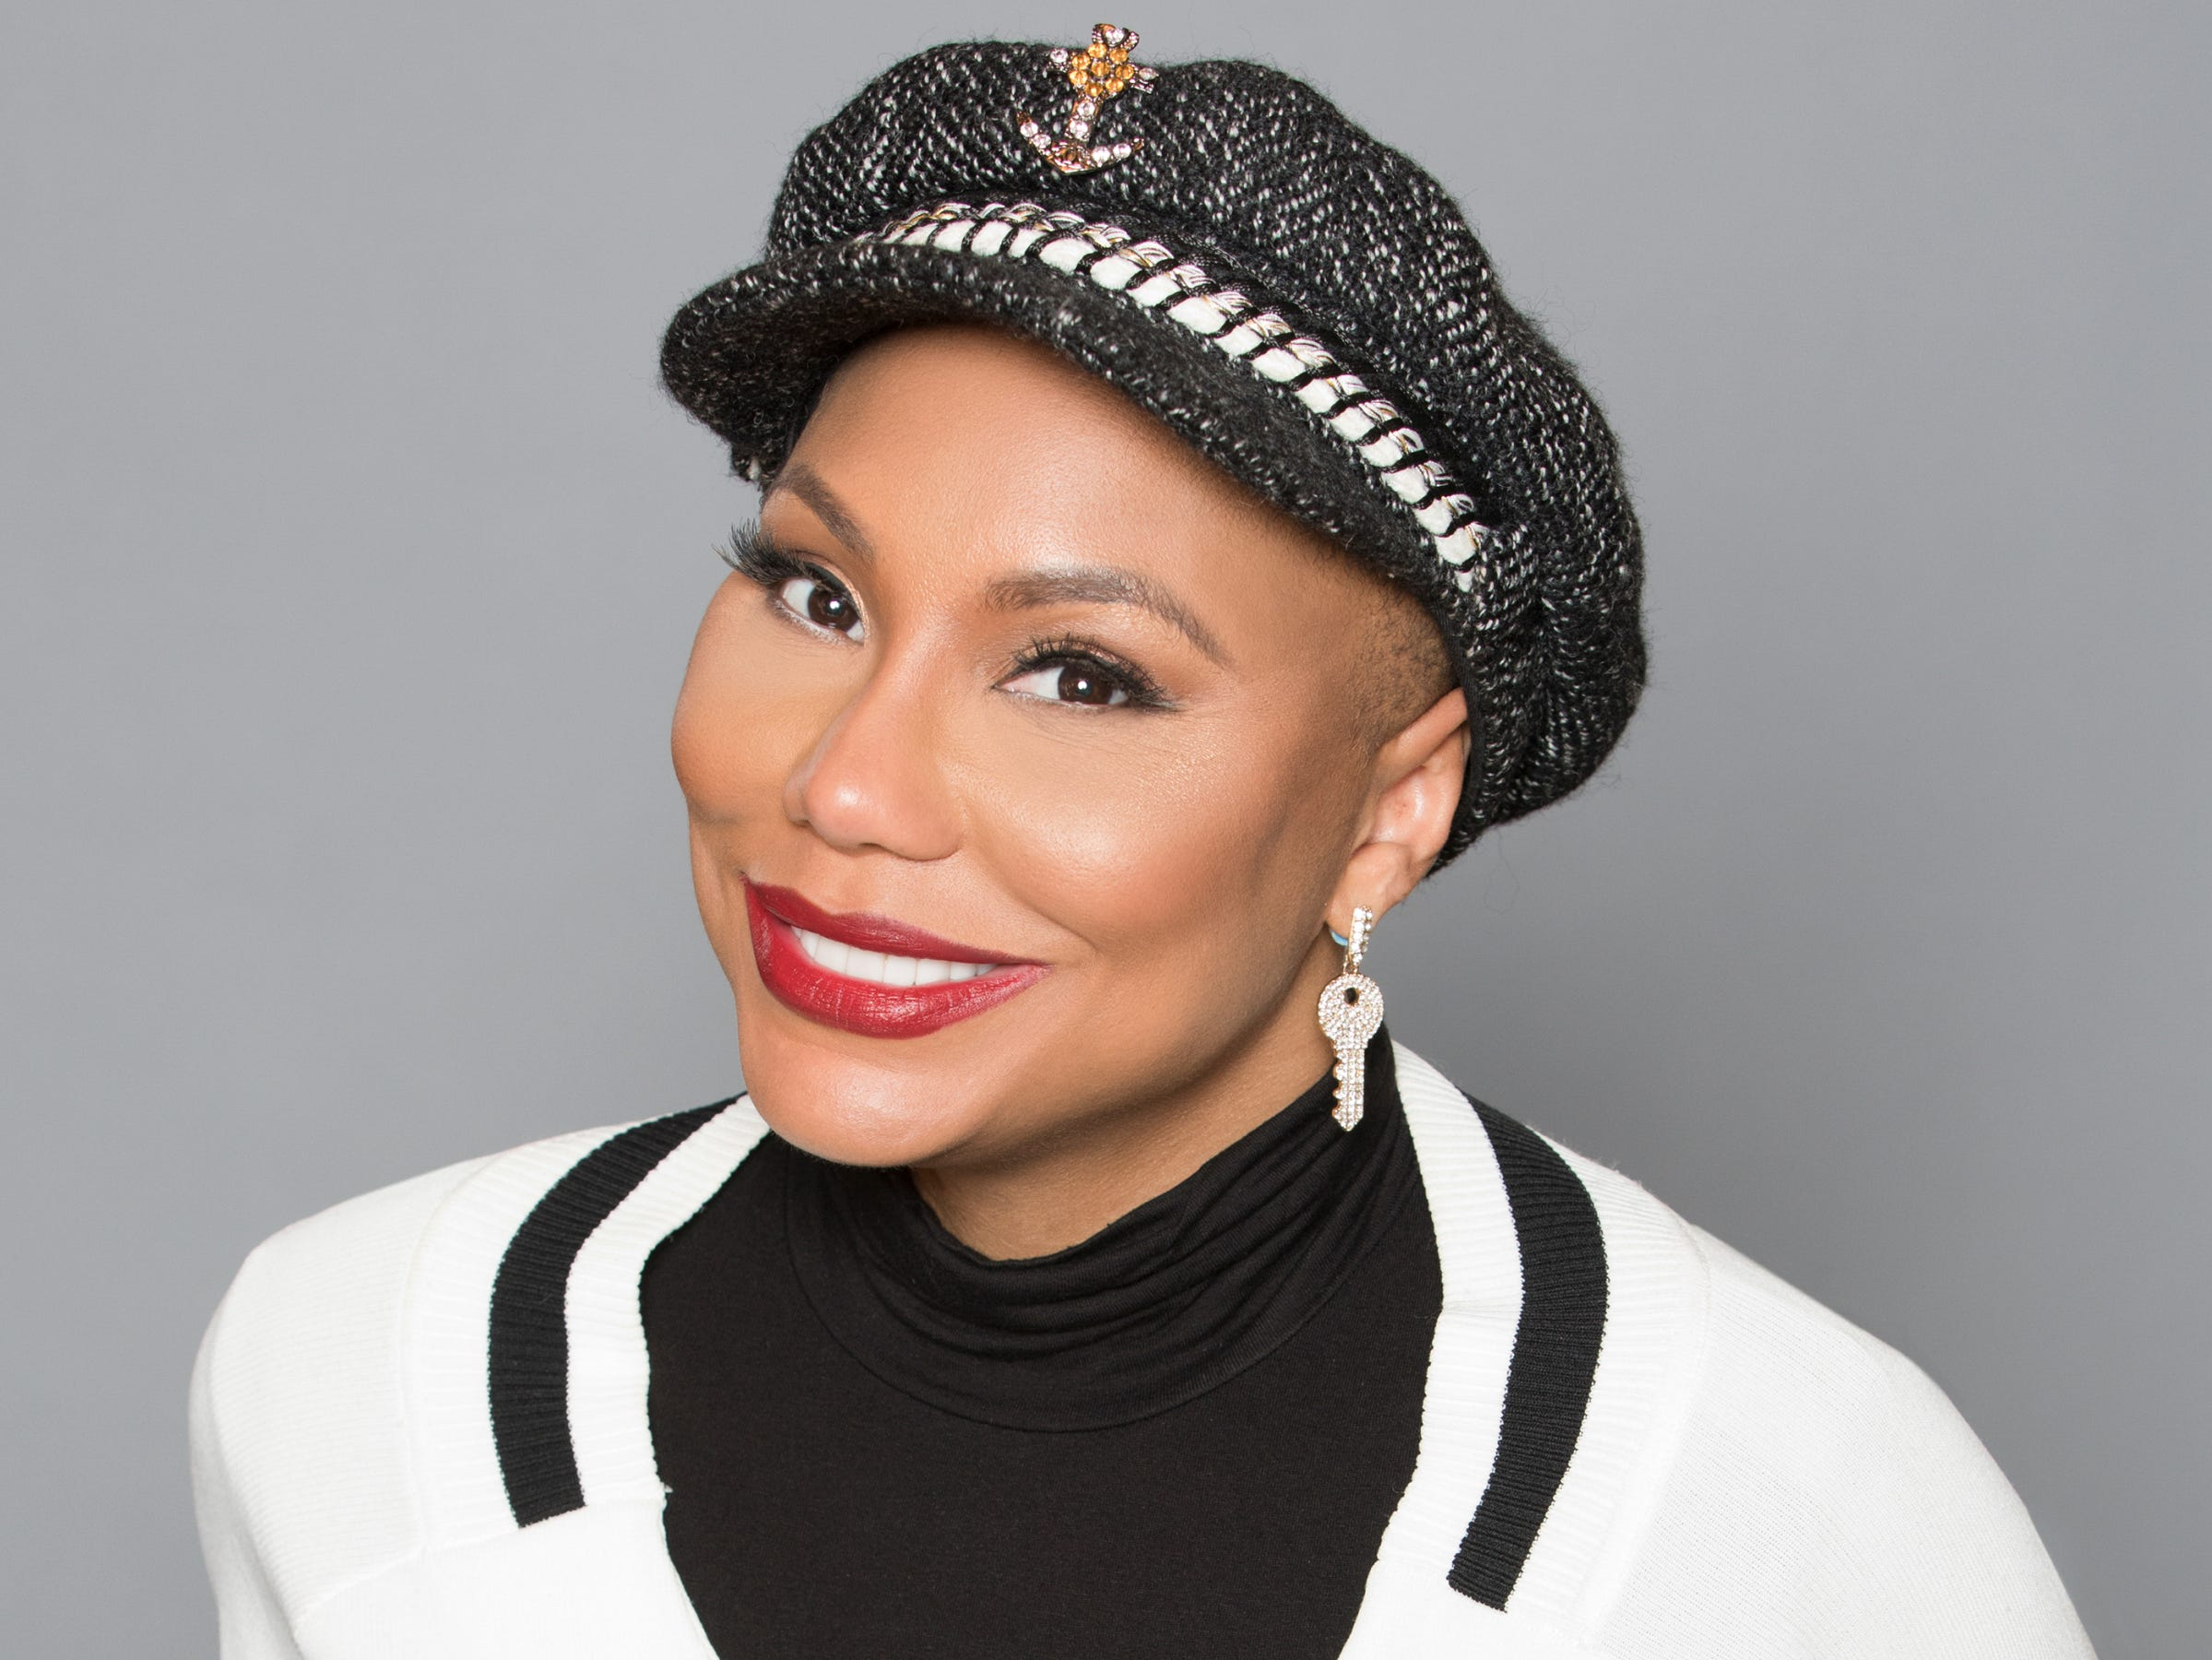 Tamar Braxton to participate in the second season of BIG BROTHER: CELEBRITY EDITION. BIG BROTHER: CELEBRITY EDITION launches with a two-night premiere event Monday, Jan. 21 (8:00-9:00 PM, ET/PT) and Tuesday, Jan. 22 (8:00-9:00 PM, ET/PT) on the CBS Television Network.   Photo: Monty Brinton/CBS  ©2019 CBS Broadcasting, Inc. All Rights Reserved